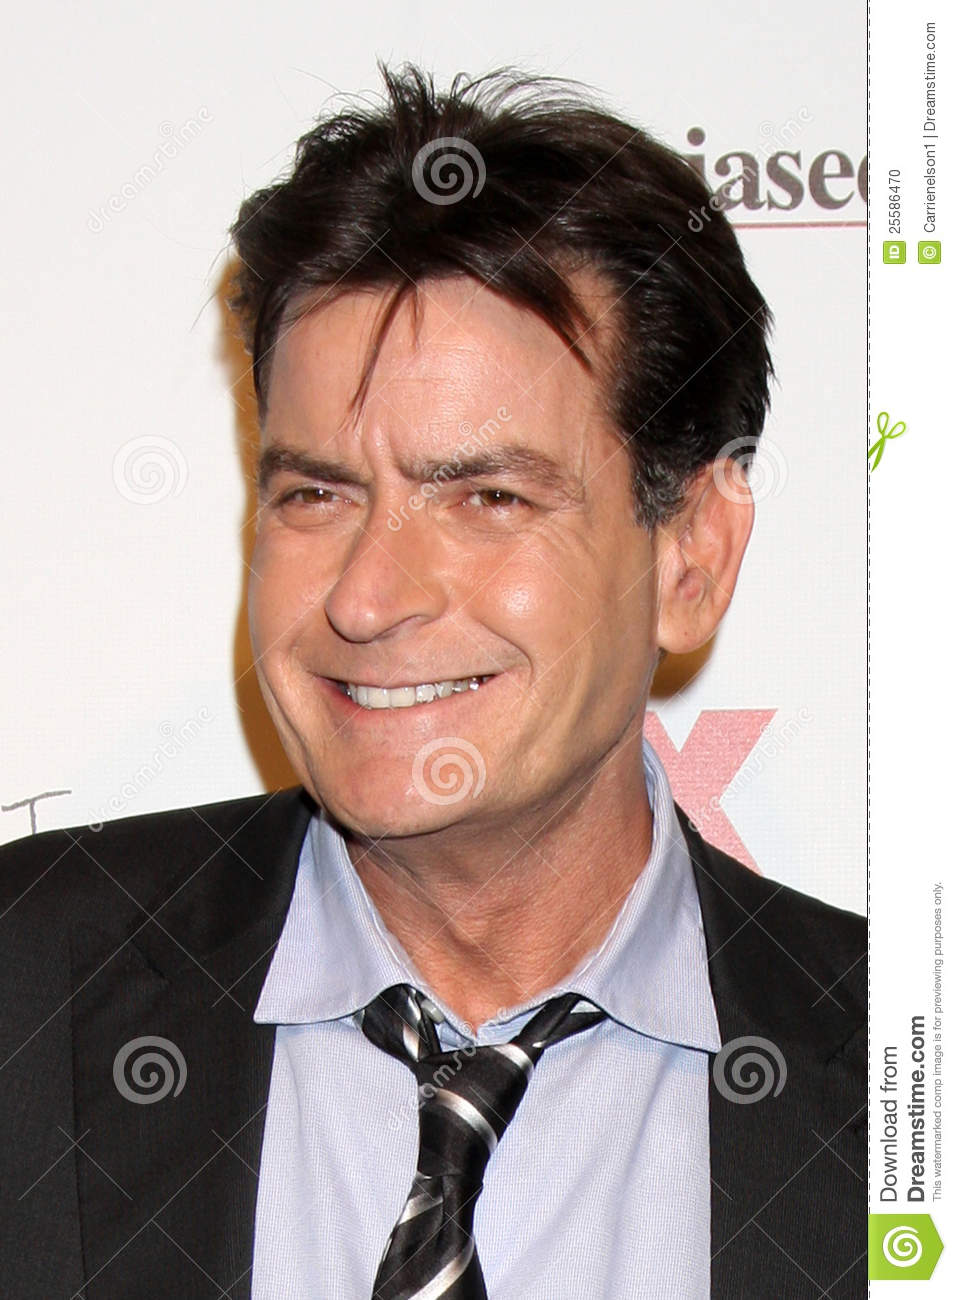 Charlie Sheen arrives at the FX Summer Comedies Party